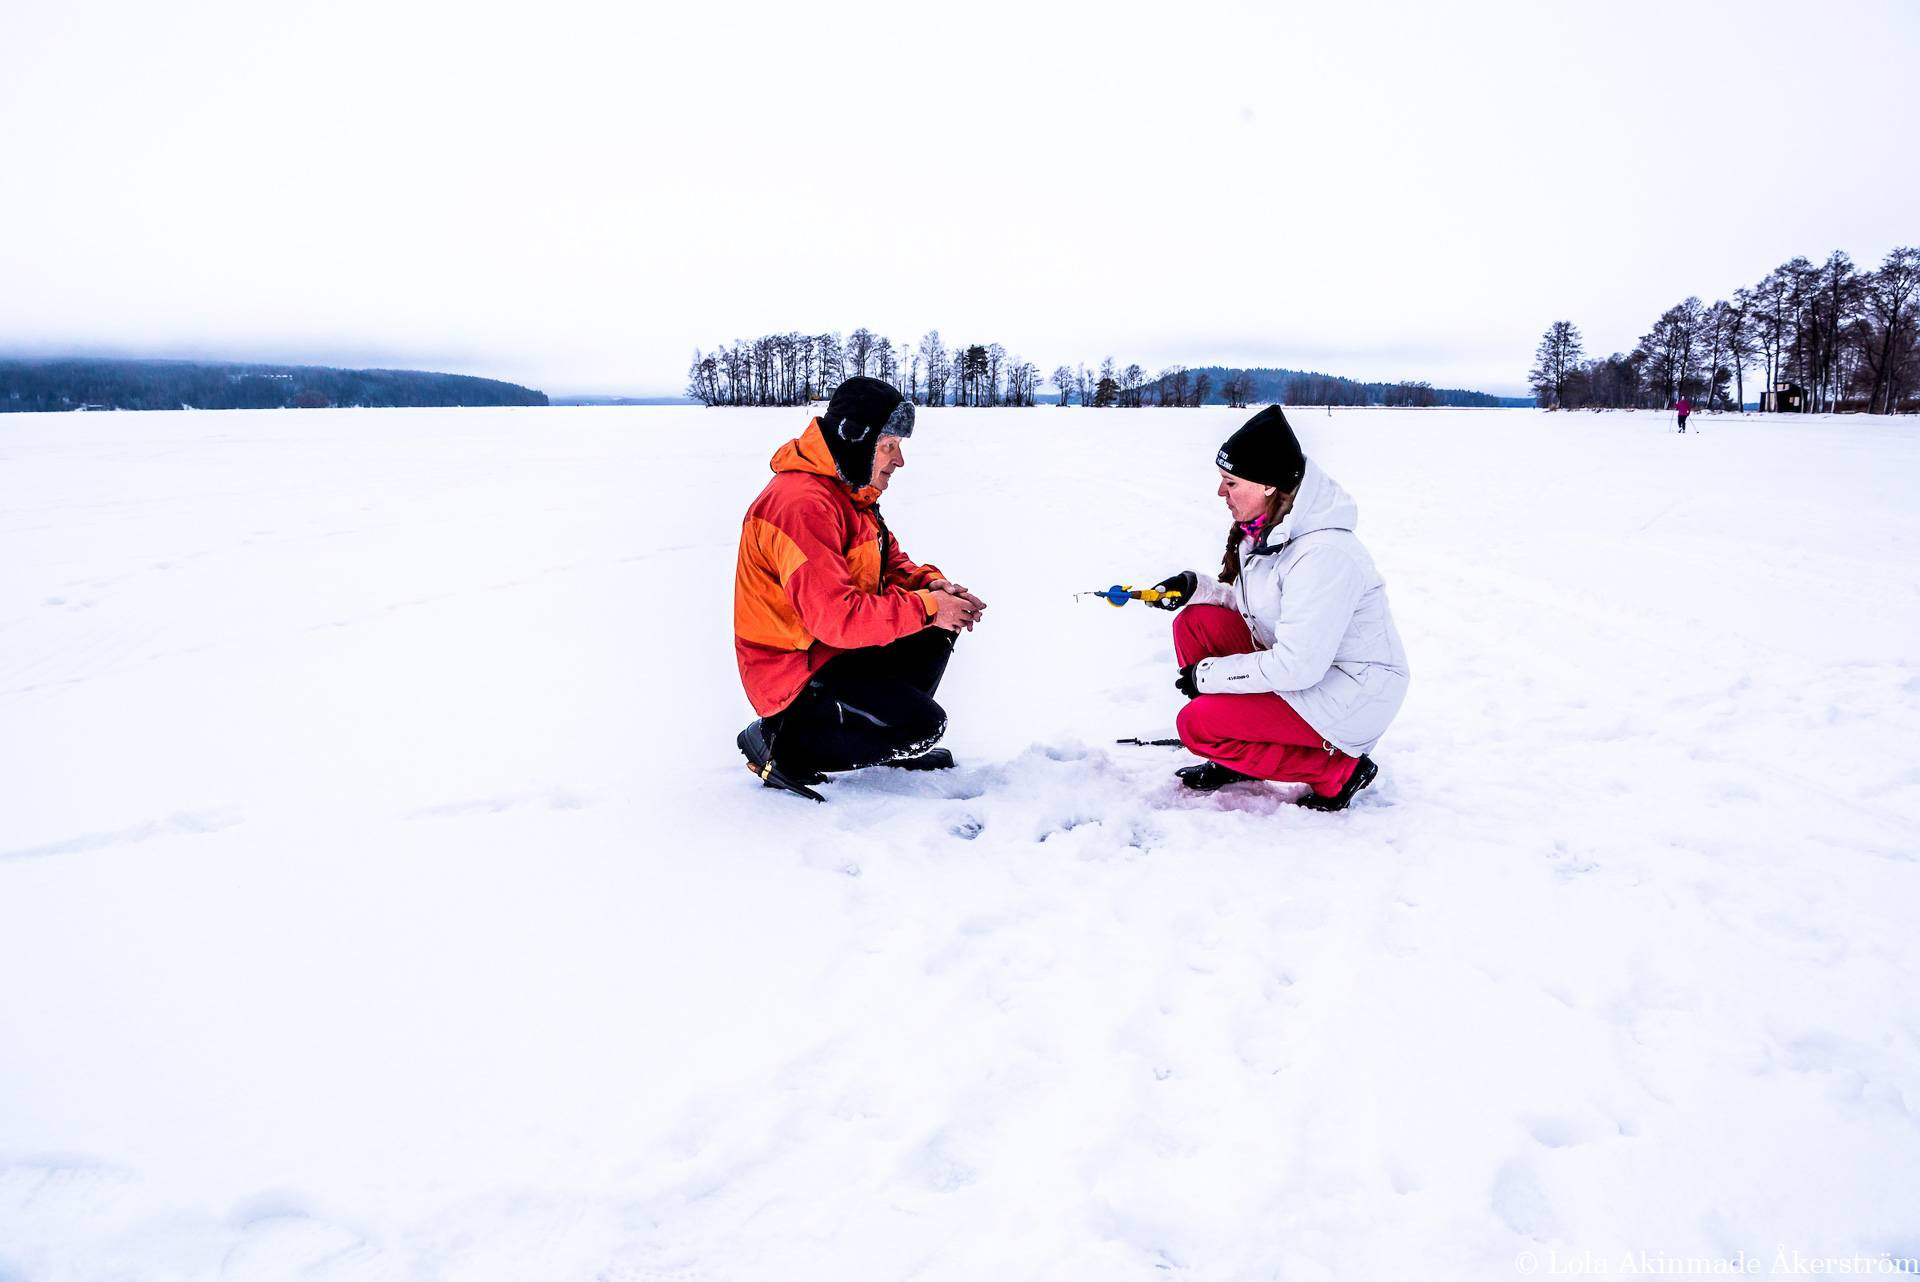 Winter Finland - Winter in Finland - What to do in Finland in winter